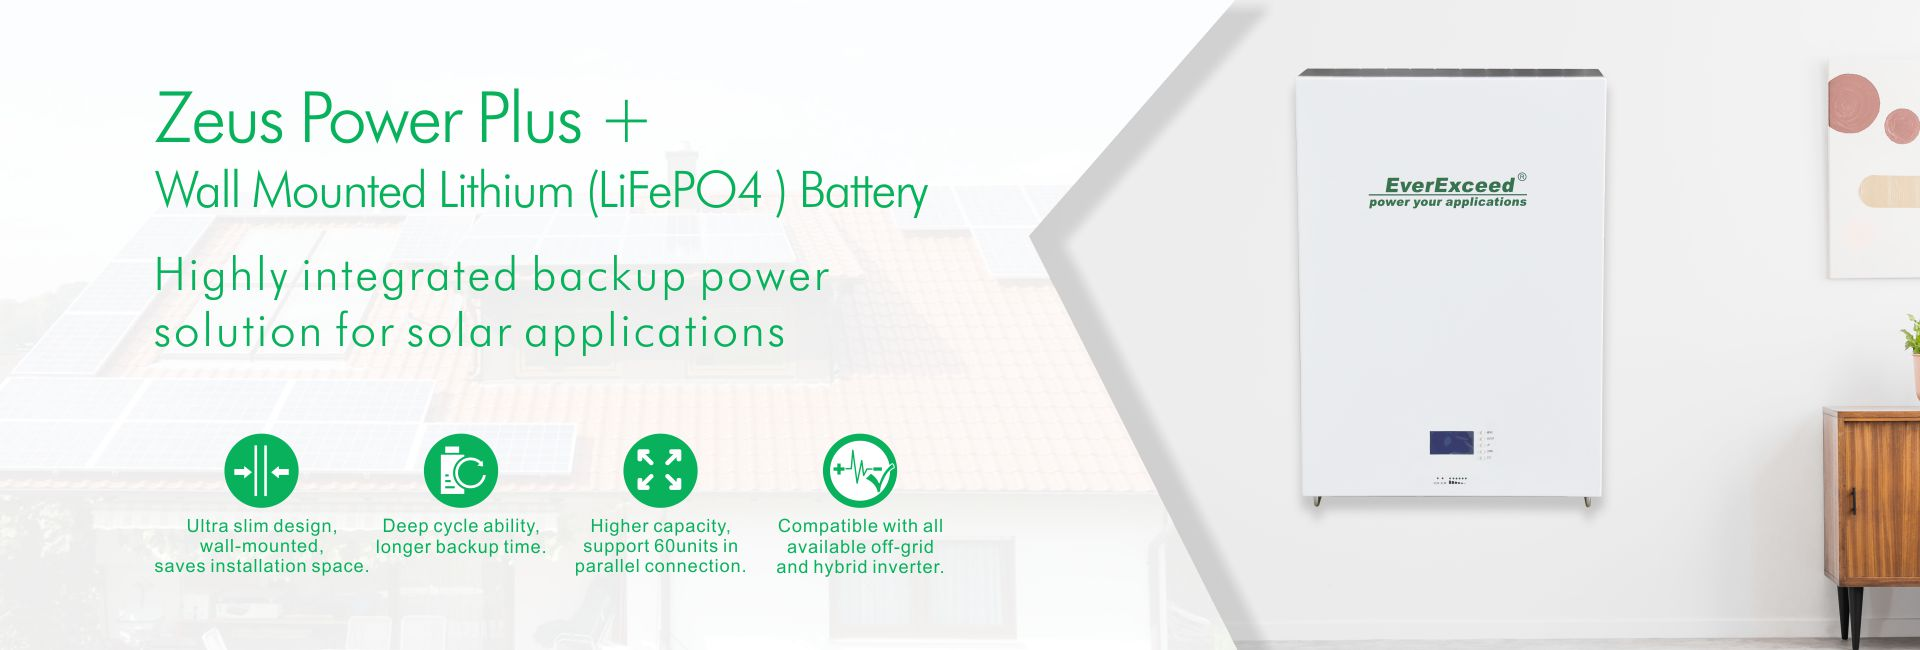 Wall Mounted Lithium (LiFePO4 ) Battery